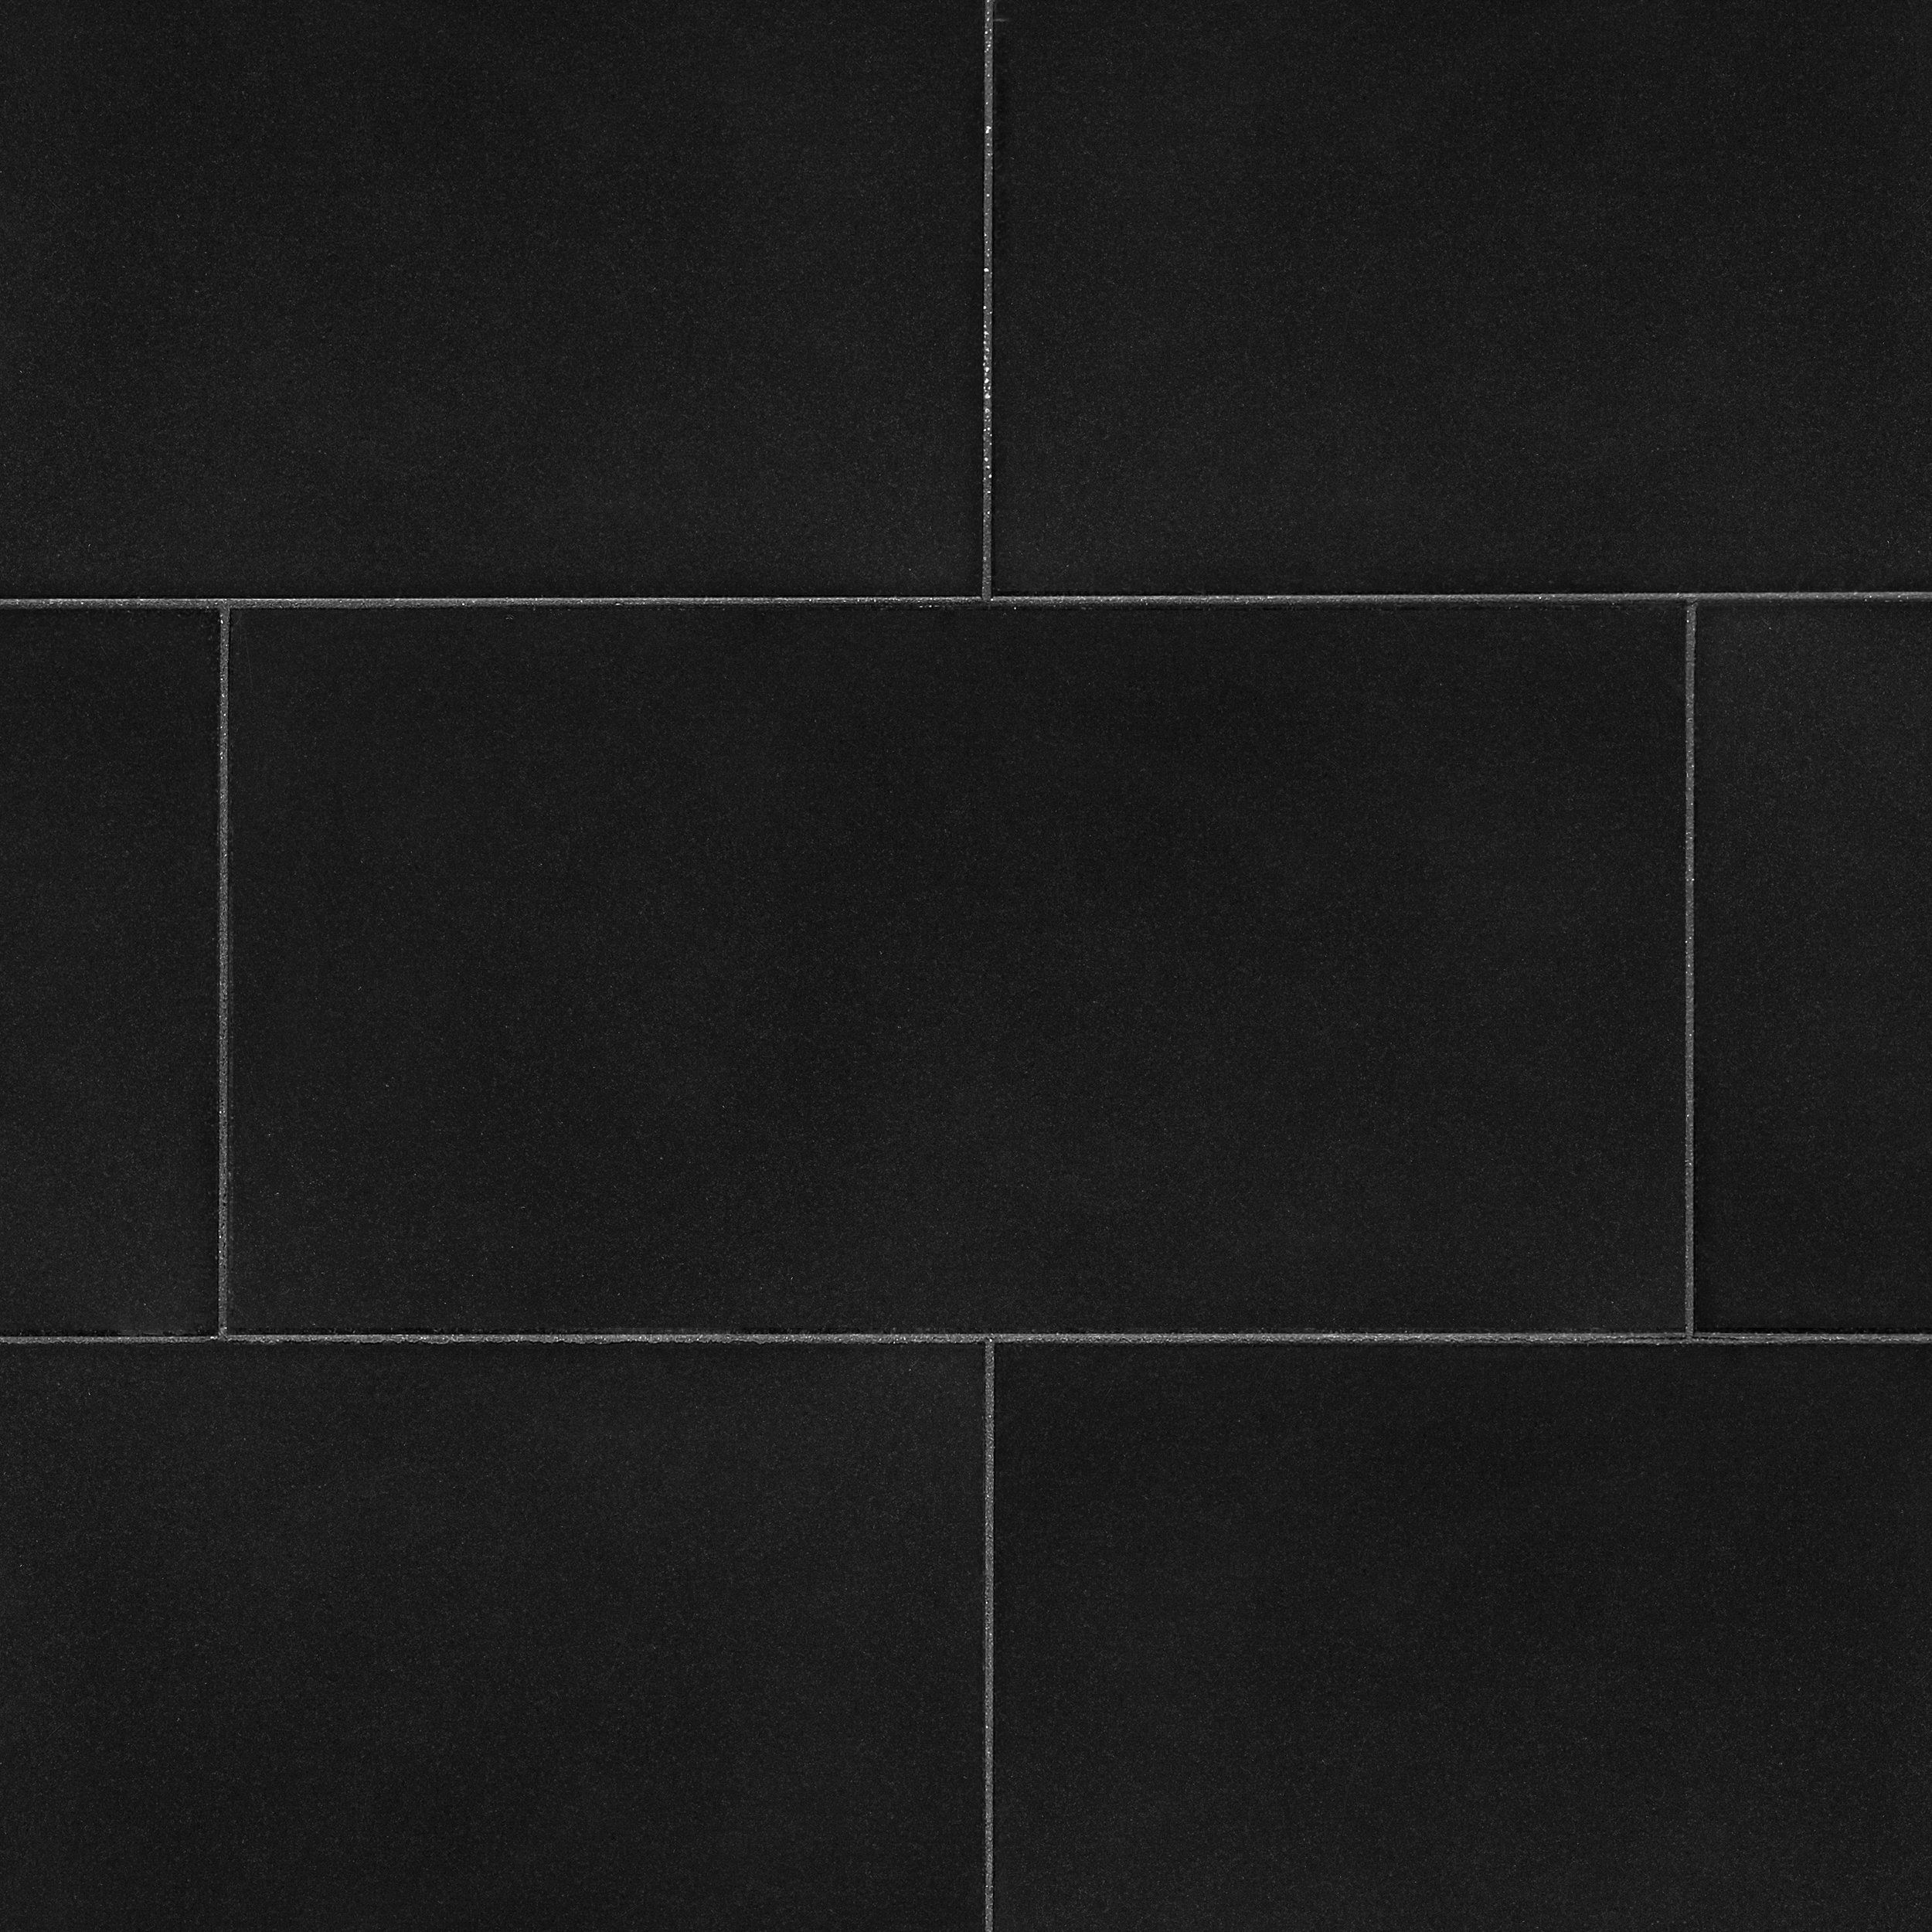 Impala Black Granite Tile Floor Decor Honed Granite Black Granite Tile Granite Tile